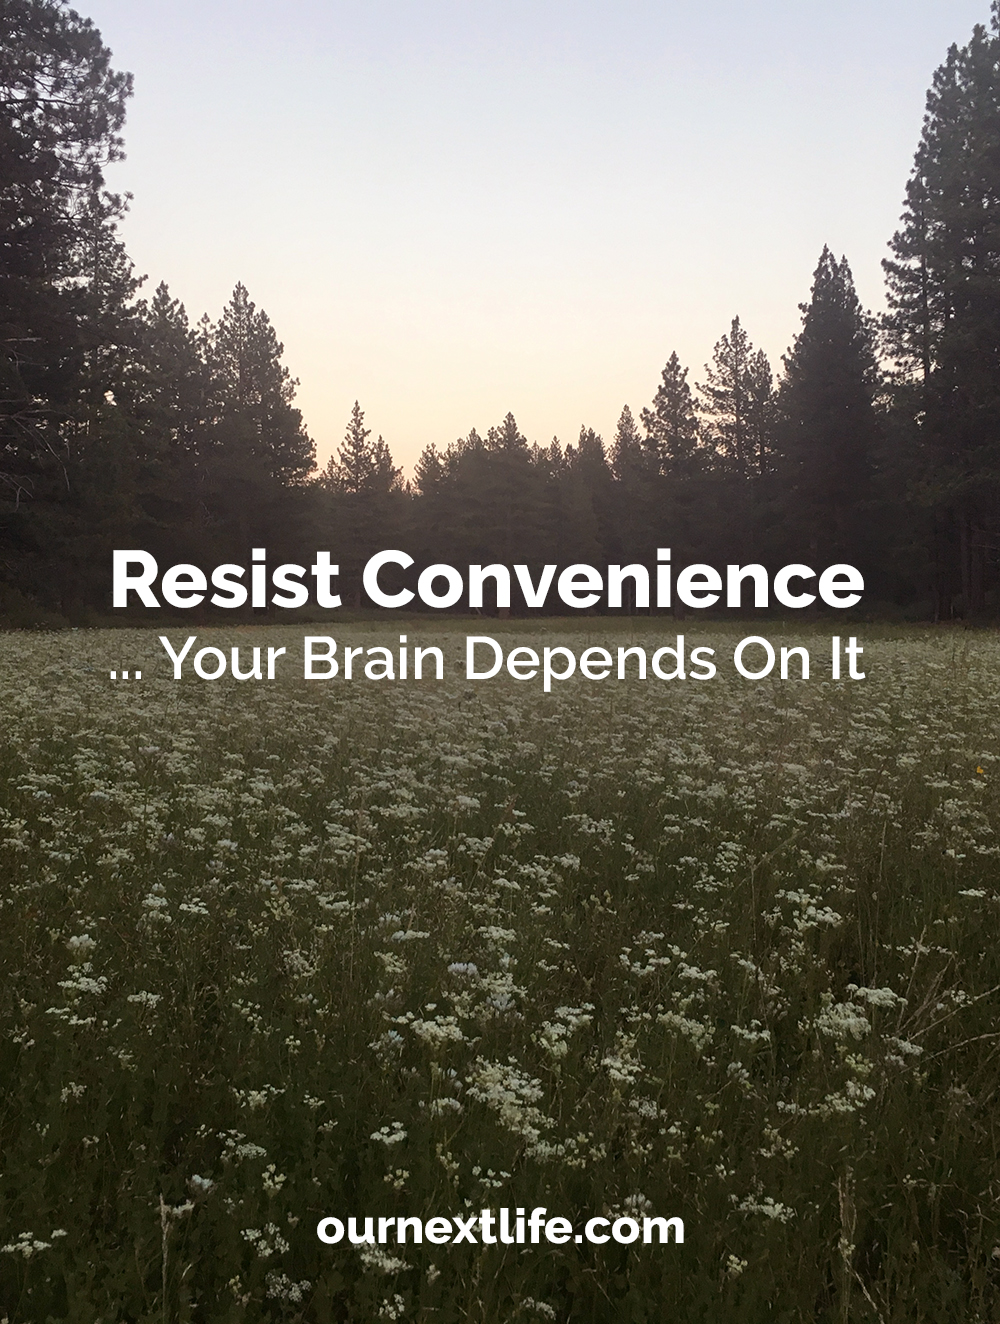 Why you should resist modern conveniences like cooking boxes, personal digital assistants, and other technologies that shrink your brain over time. Focus on challenging yourself and doing as much via DIY as you can, based on your circumstances!